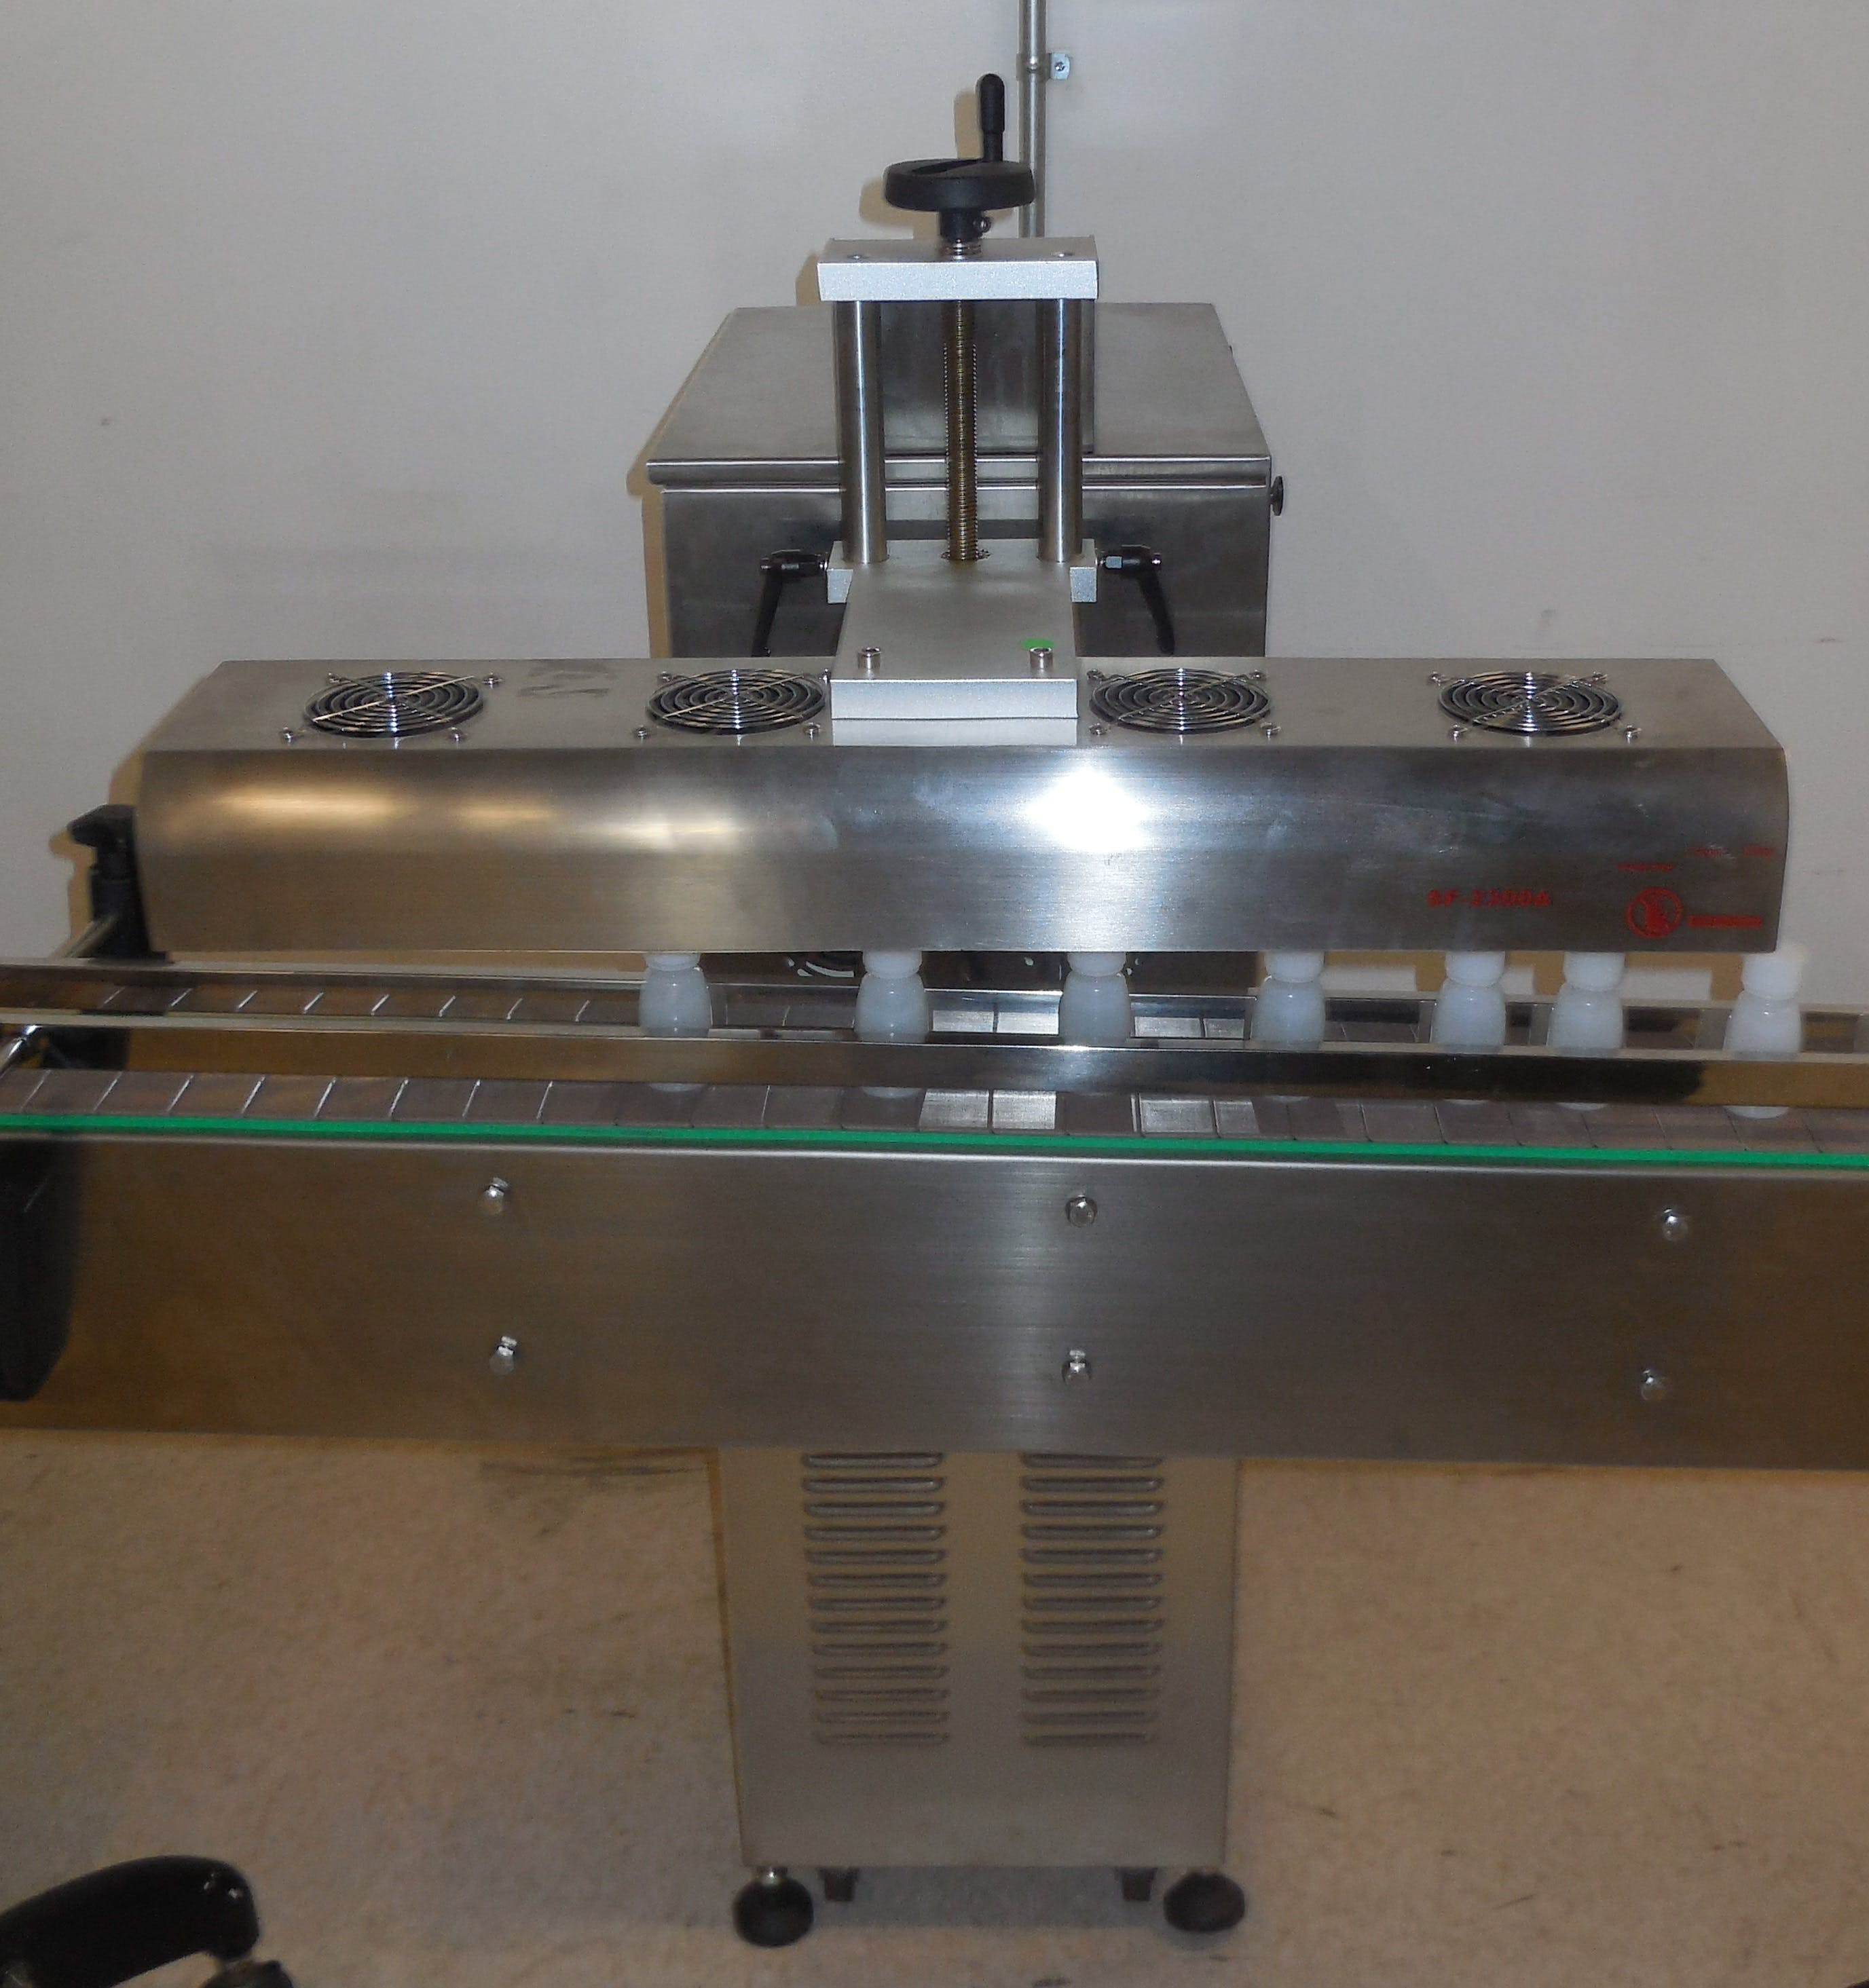 Induction Cap Sealers for Production Line - sold by Crystal Vision Packaging Systems